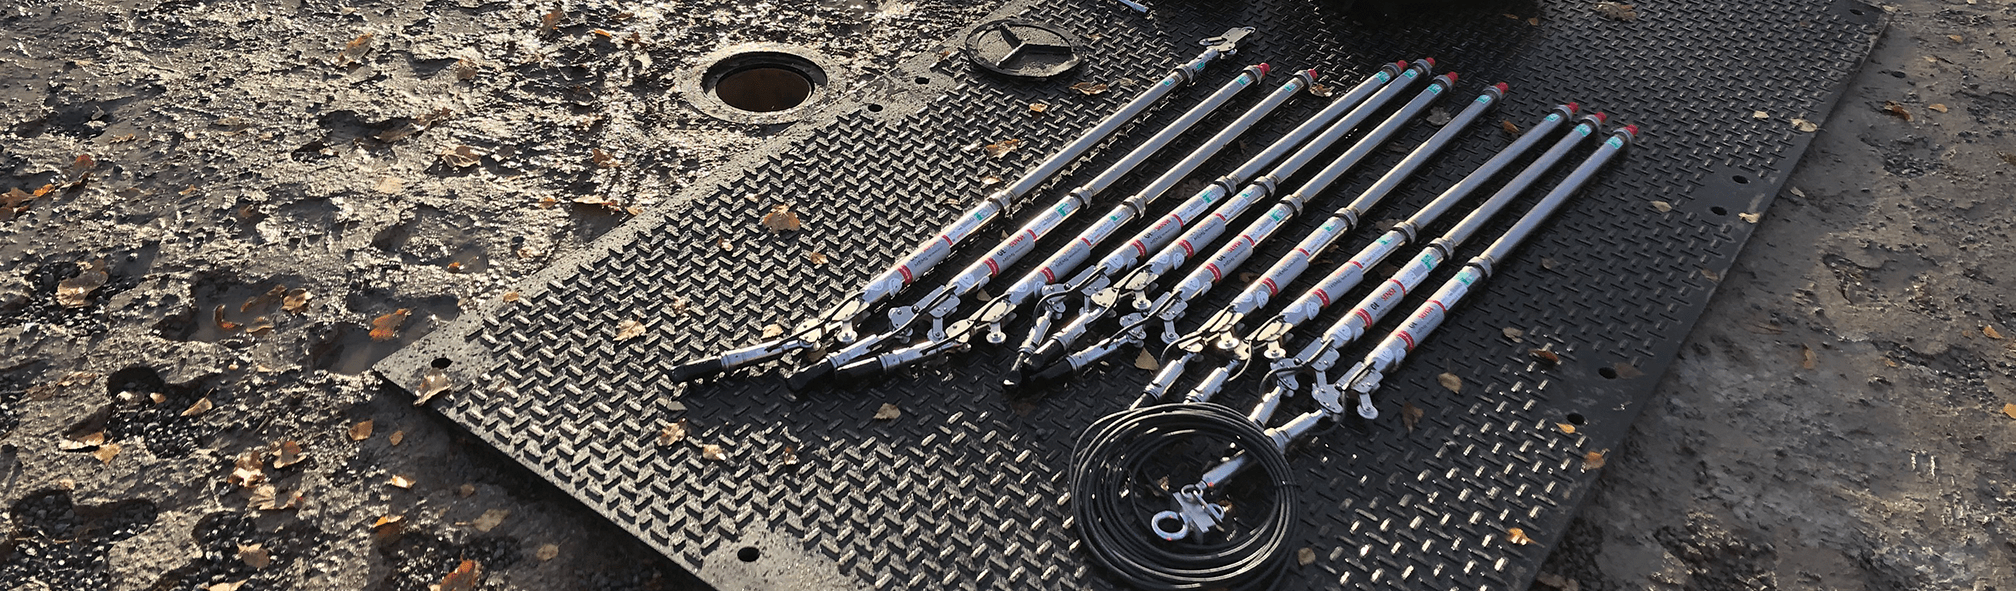 In-Place inclinometers on ground ready to install in borehole